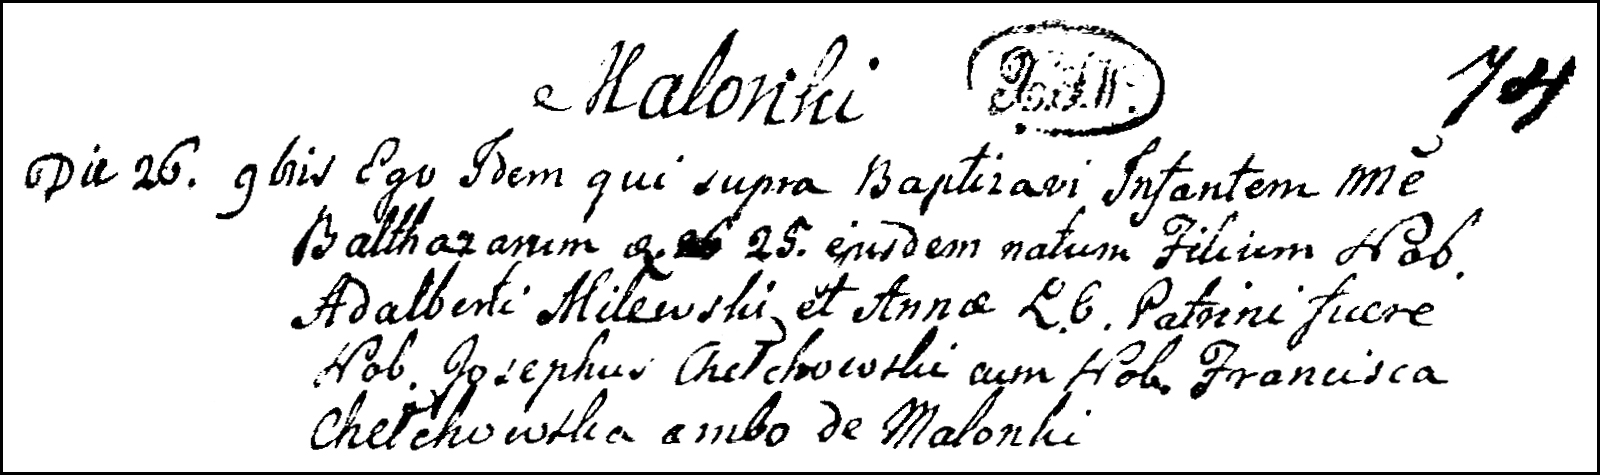 The Birth and Baptismal Record of Baltazar Milewski - 1795